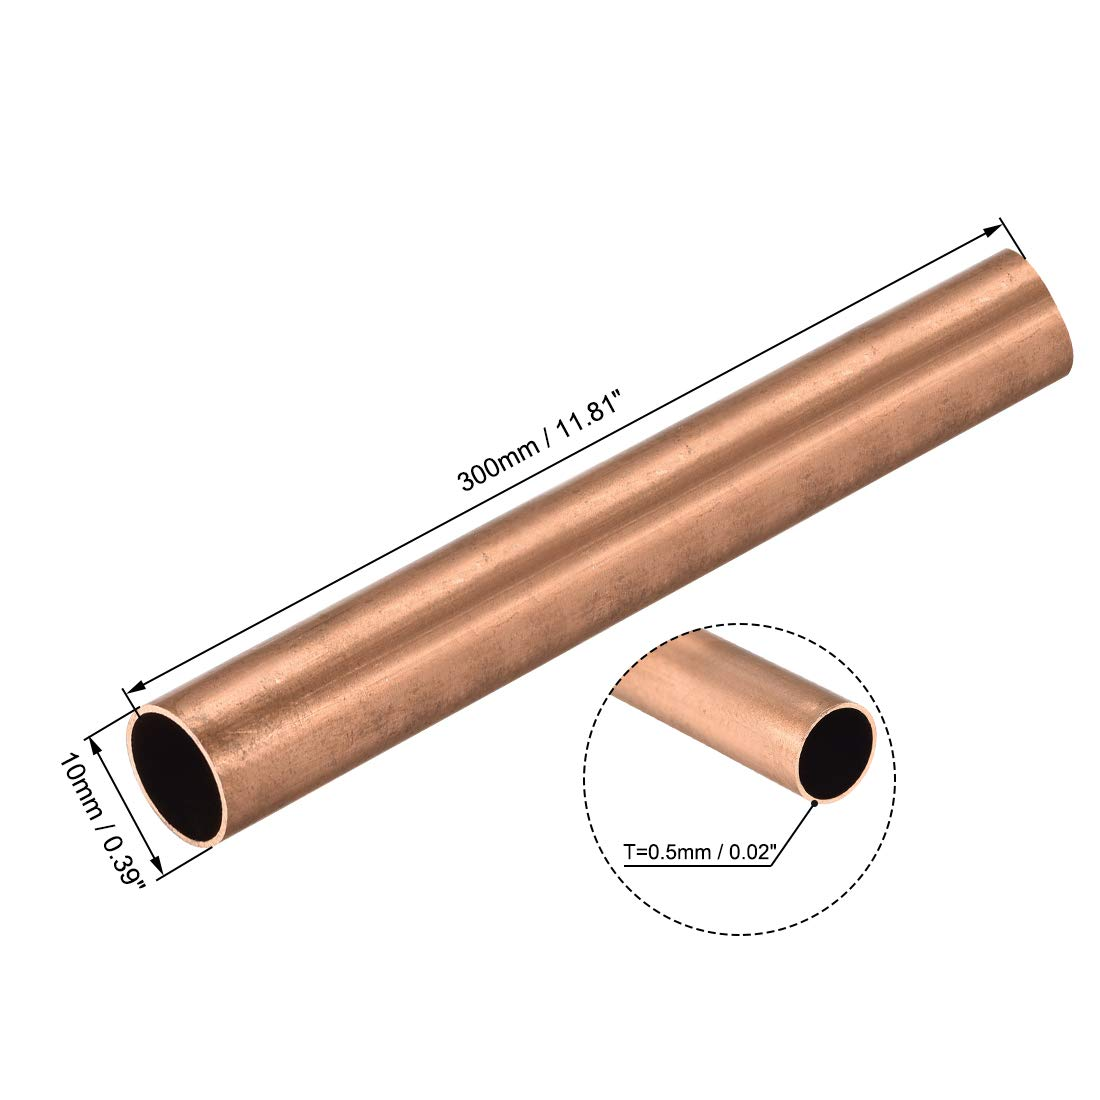 Copper Round Tube 3mm OD 0.2mm Wall Thickness 300mm Long Hollow Pipe Tubing